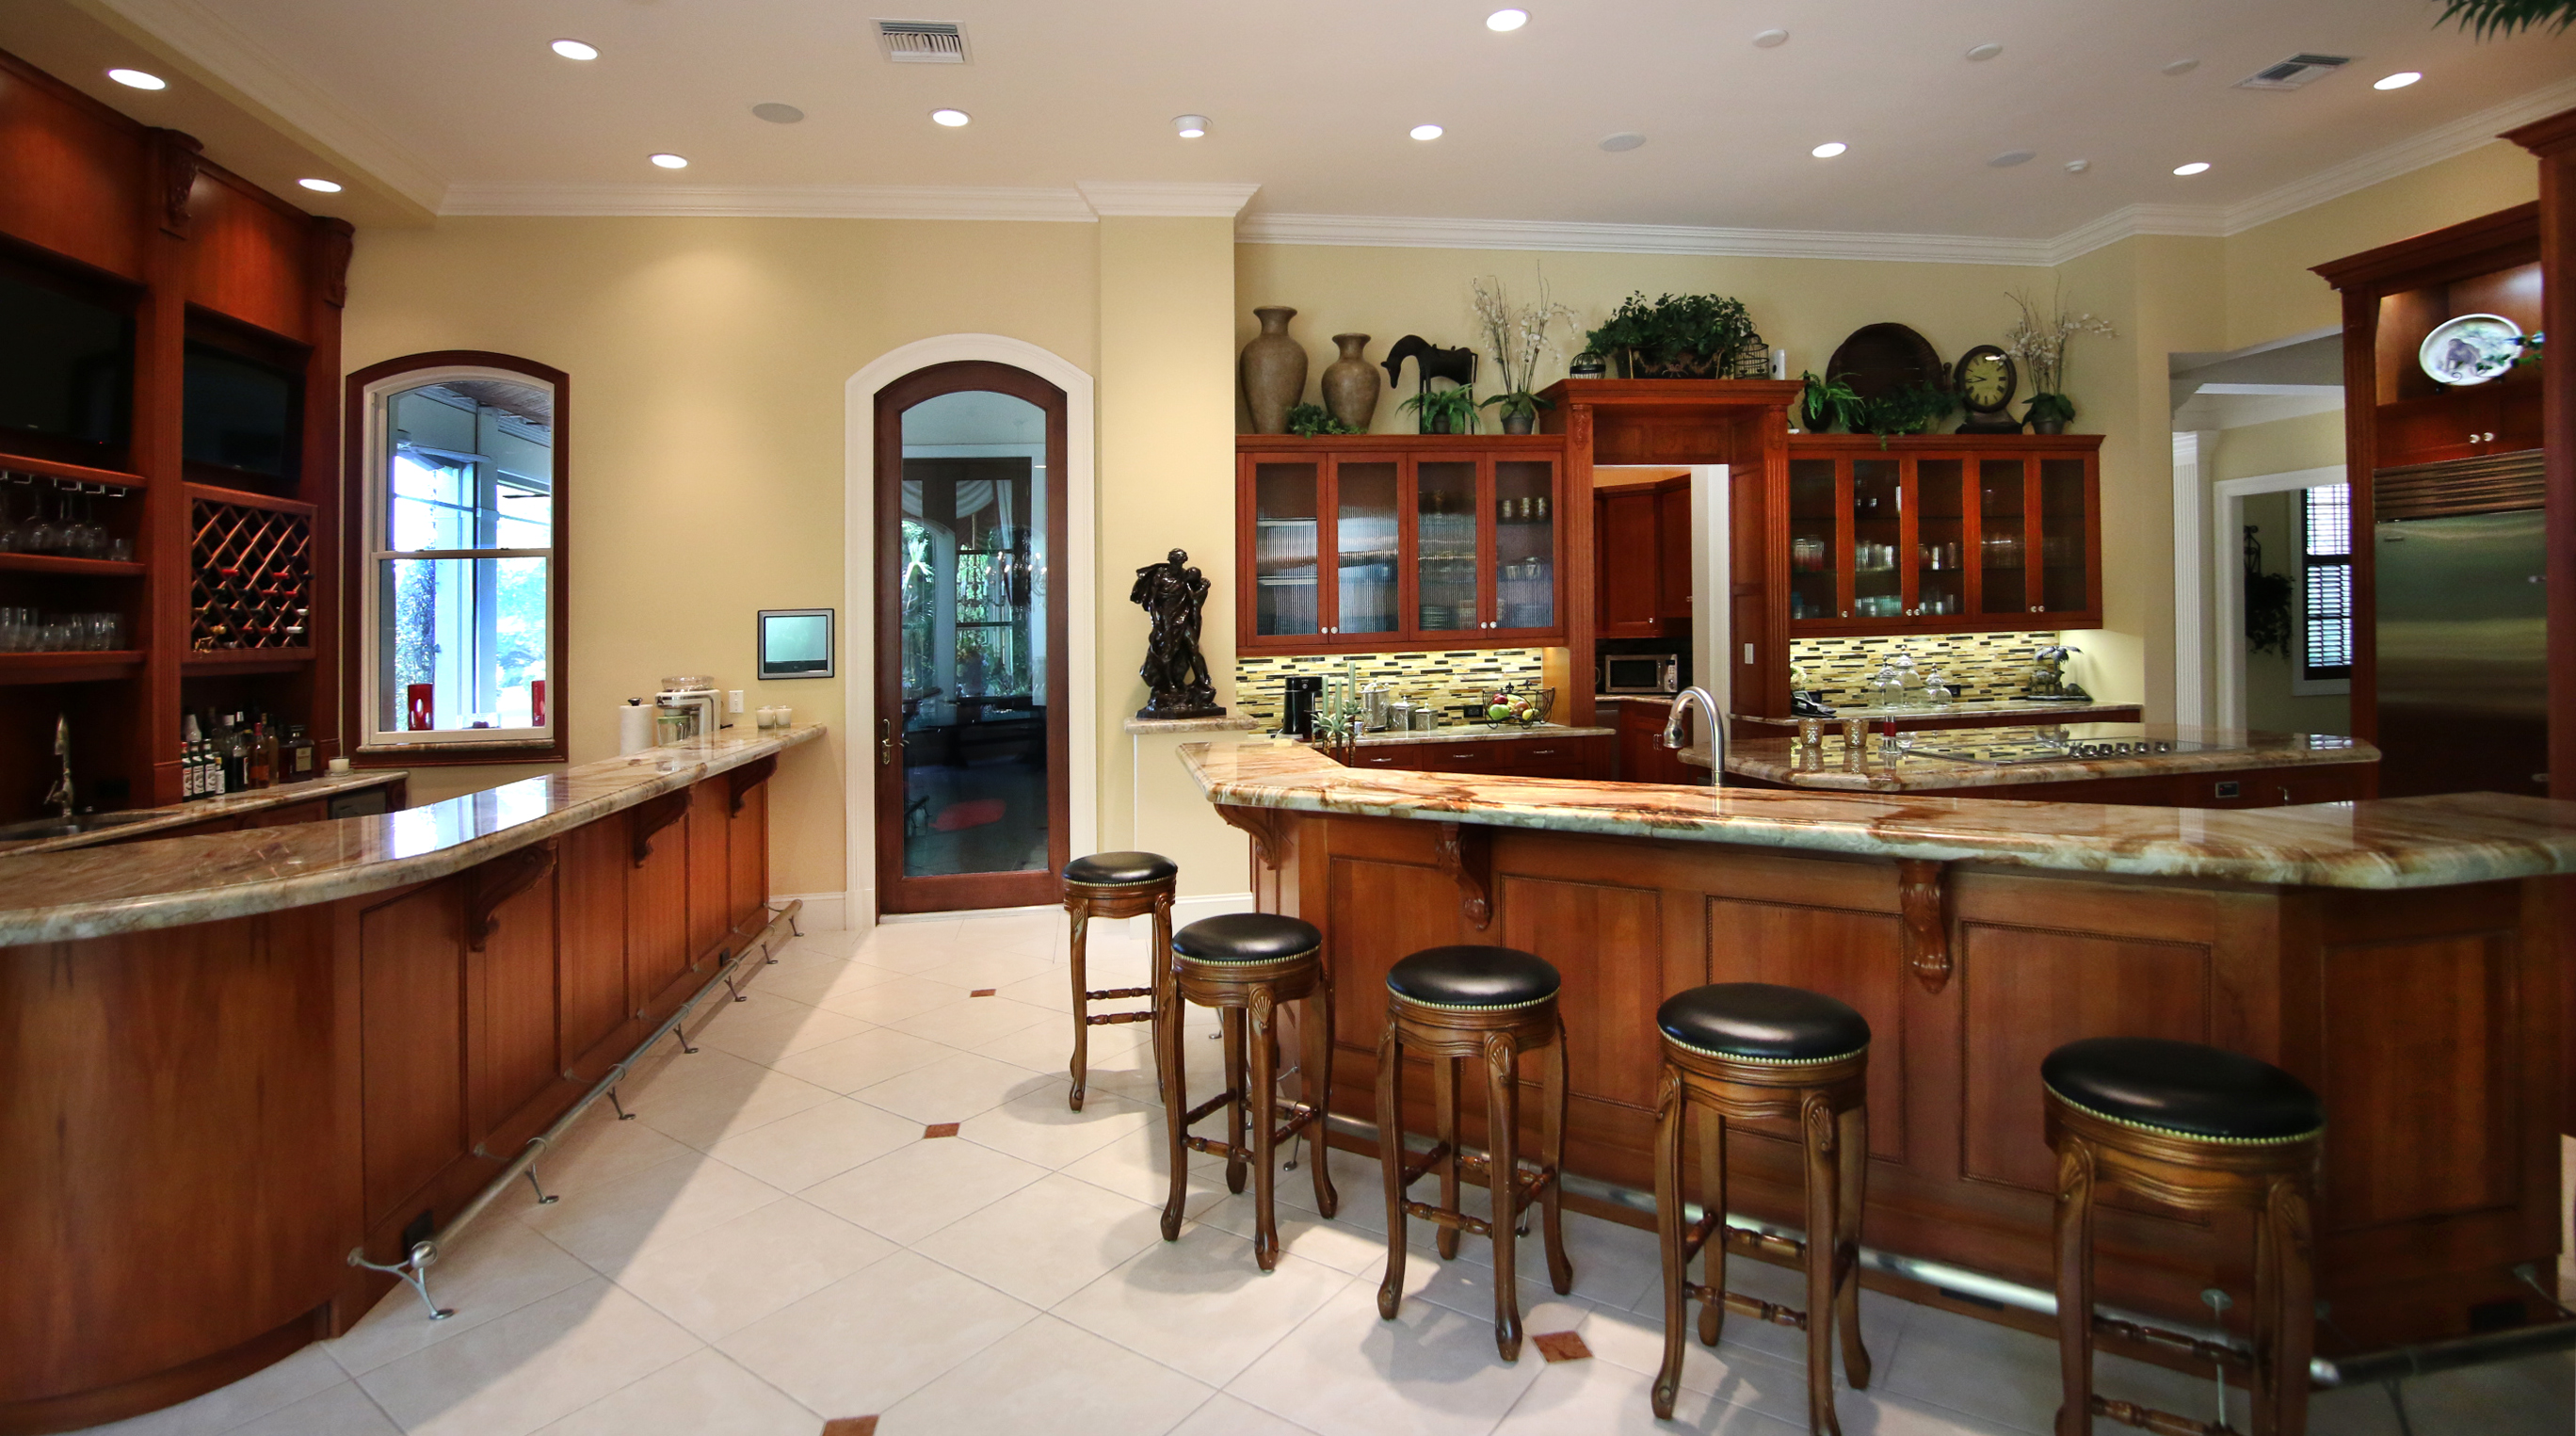 Kitchen DesignWelcome to East Shore Cabinetry